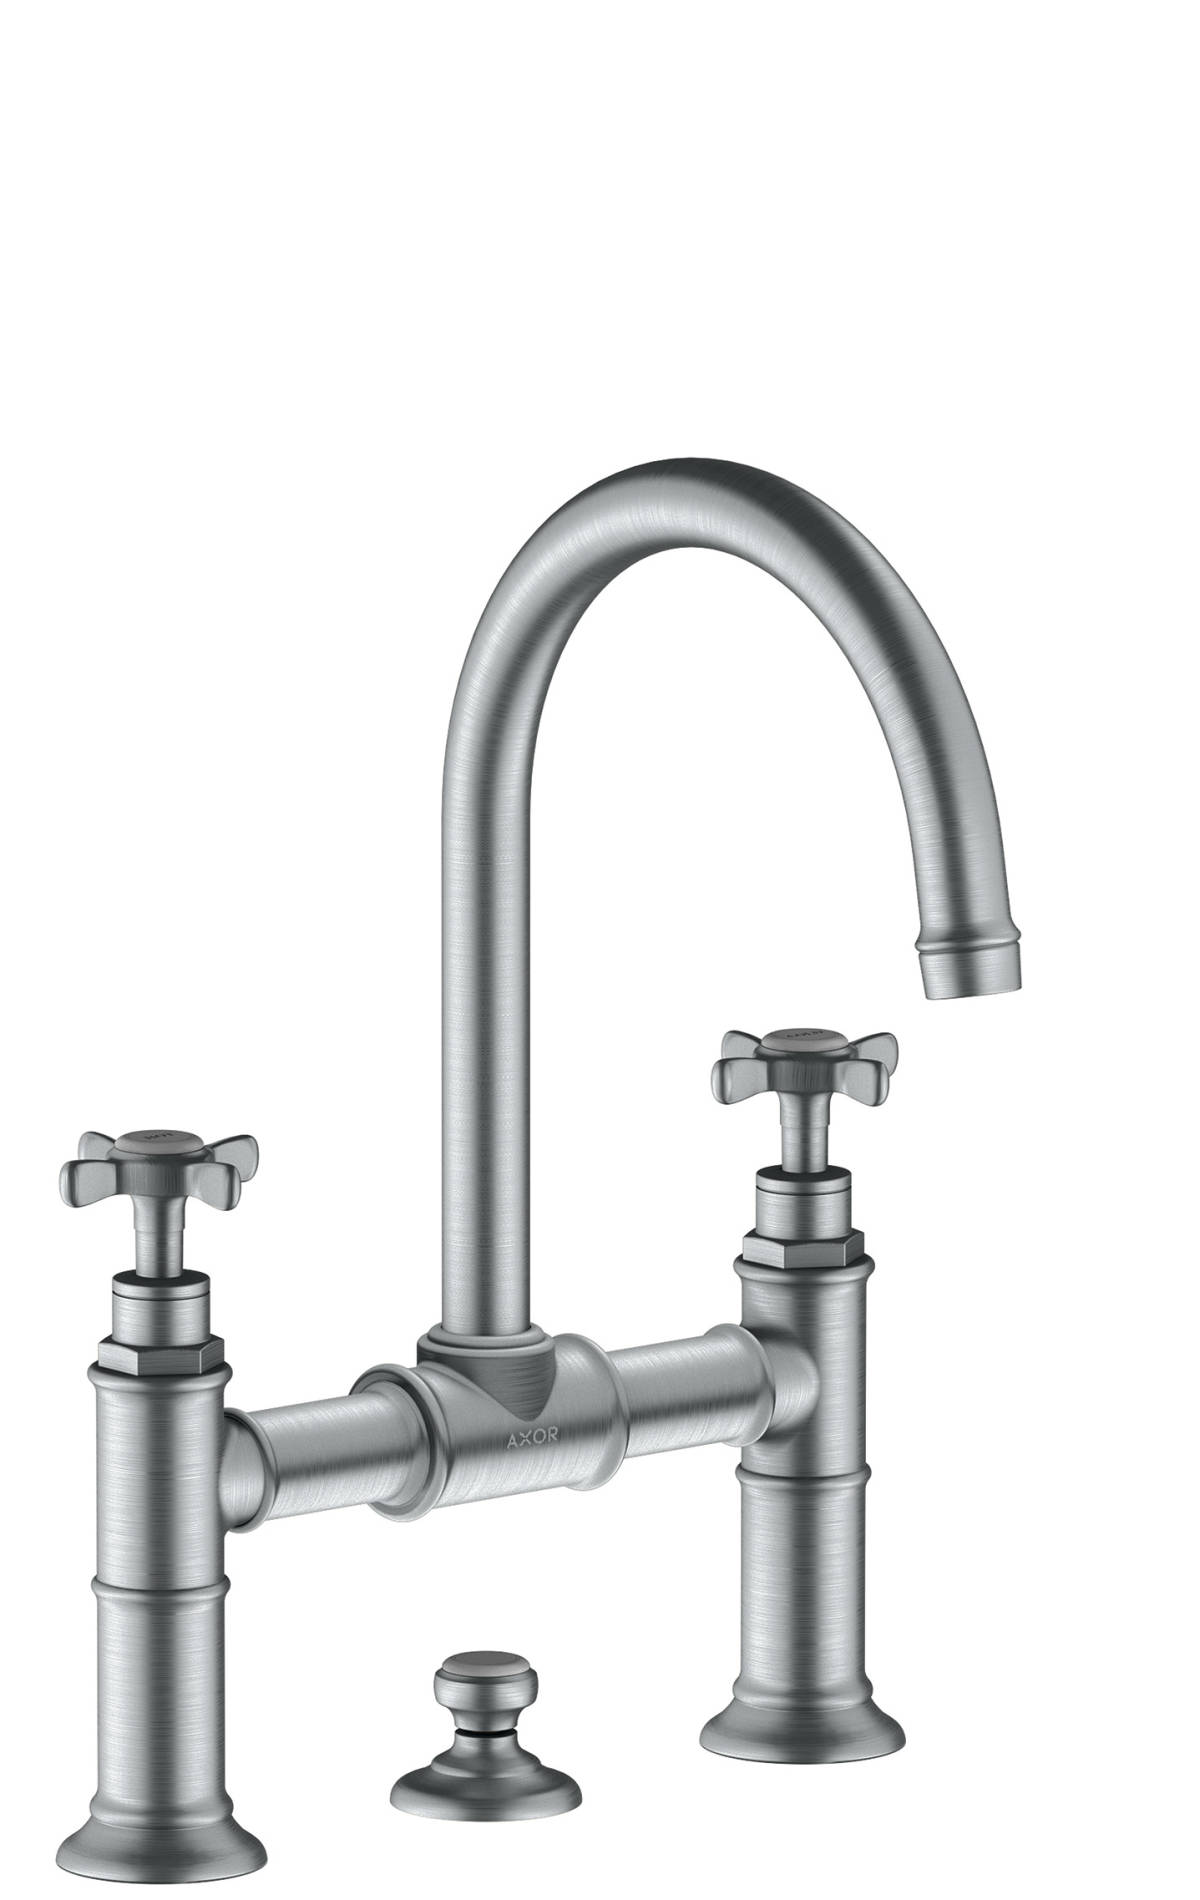 2-handle basin mixer 220 with cross handles and pop-up waste set, Brushed Chrome, 16510260